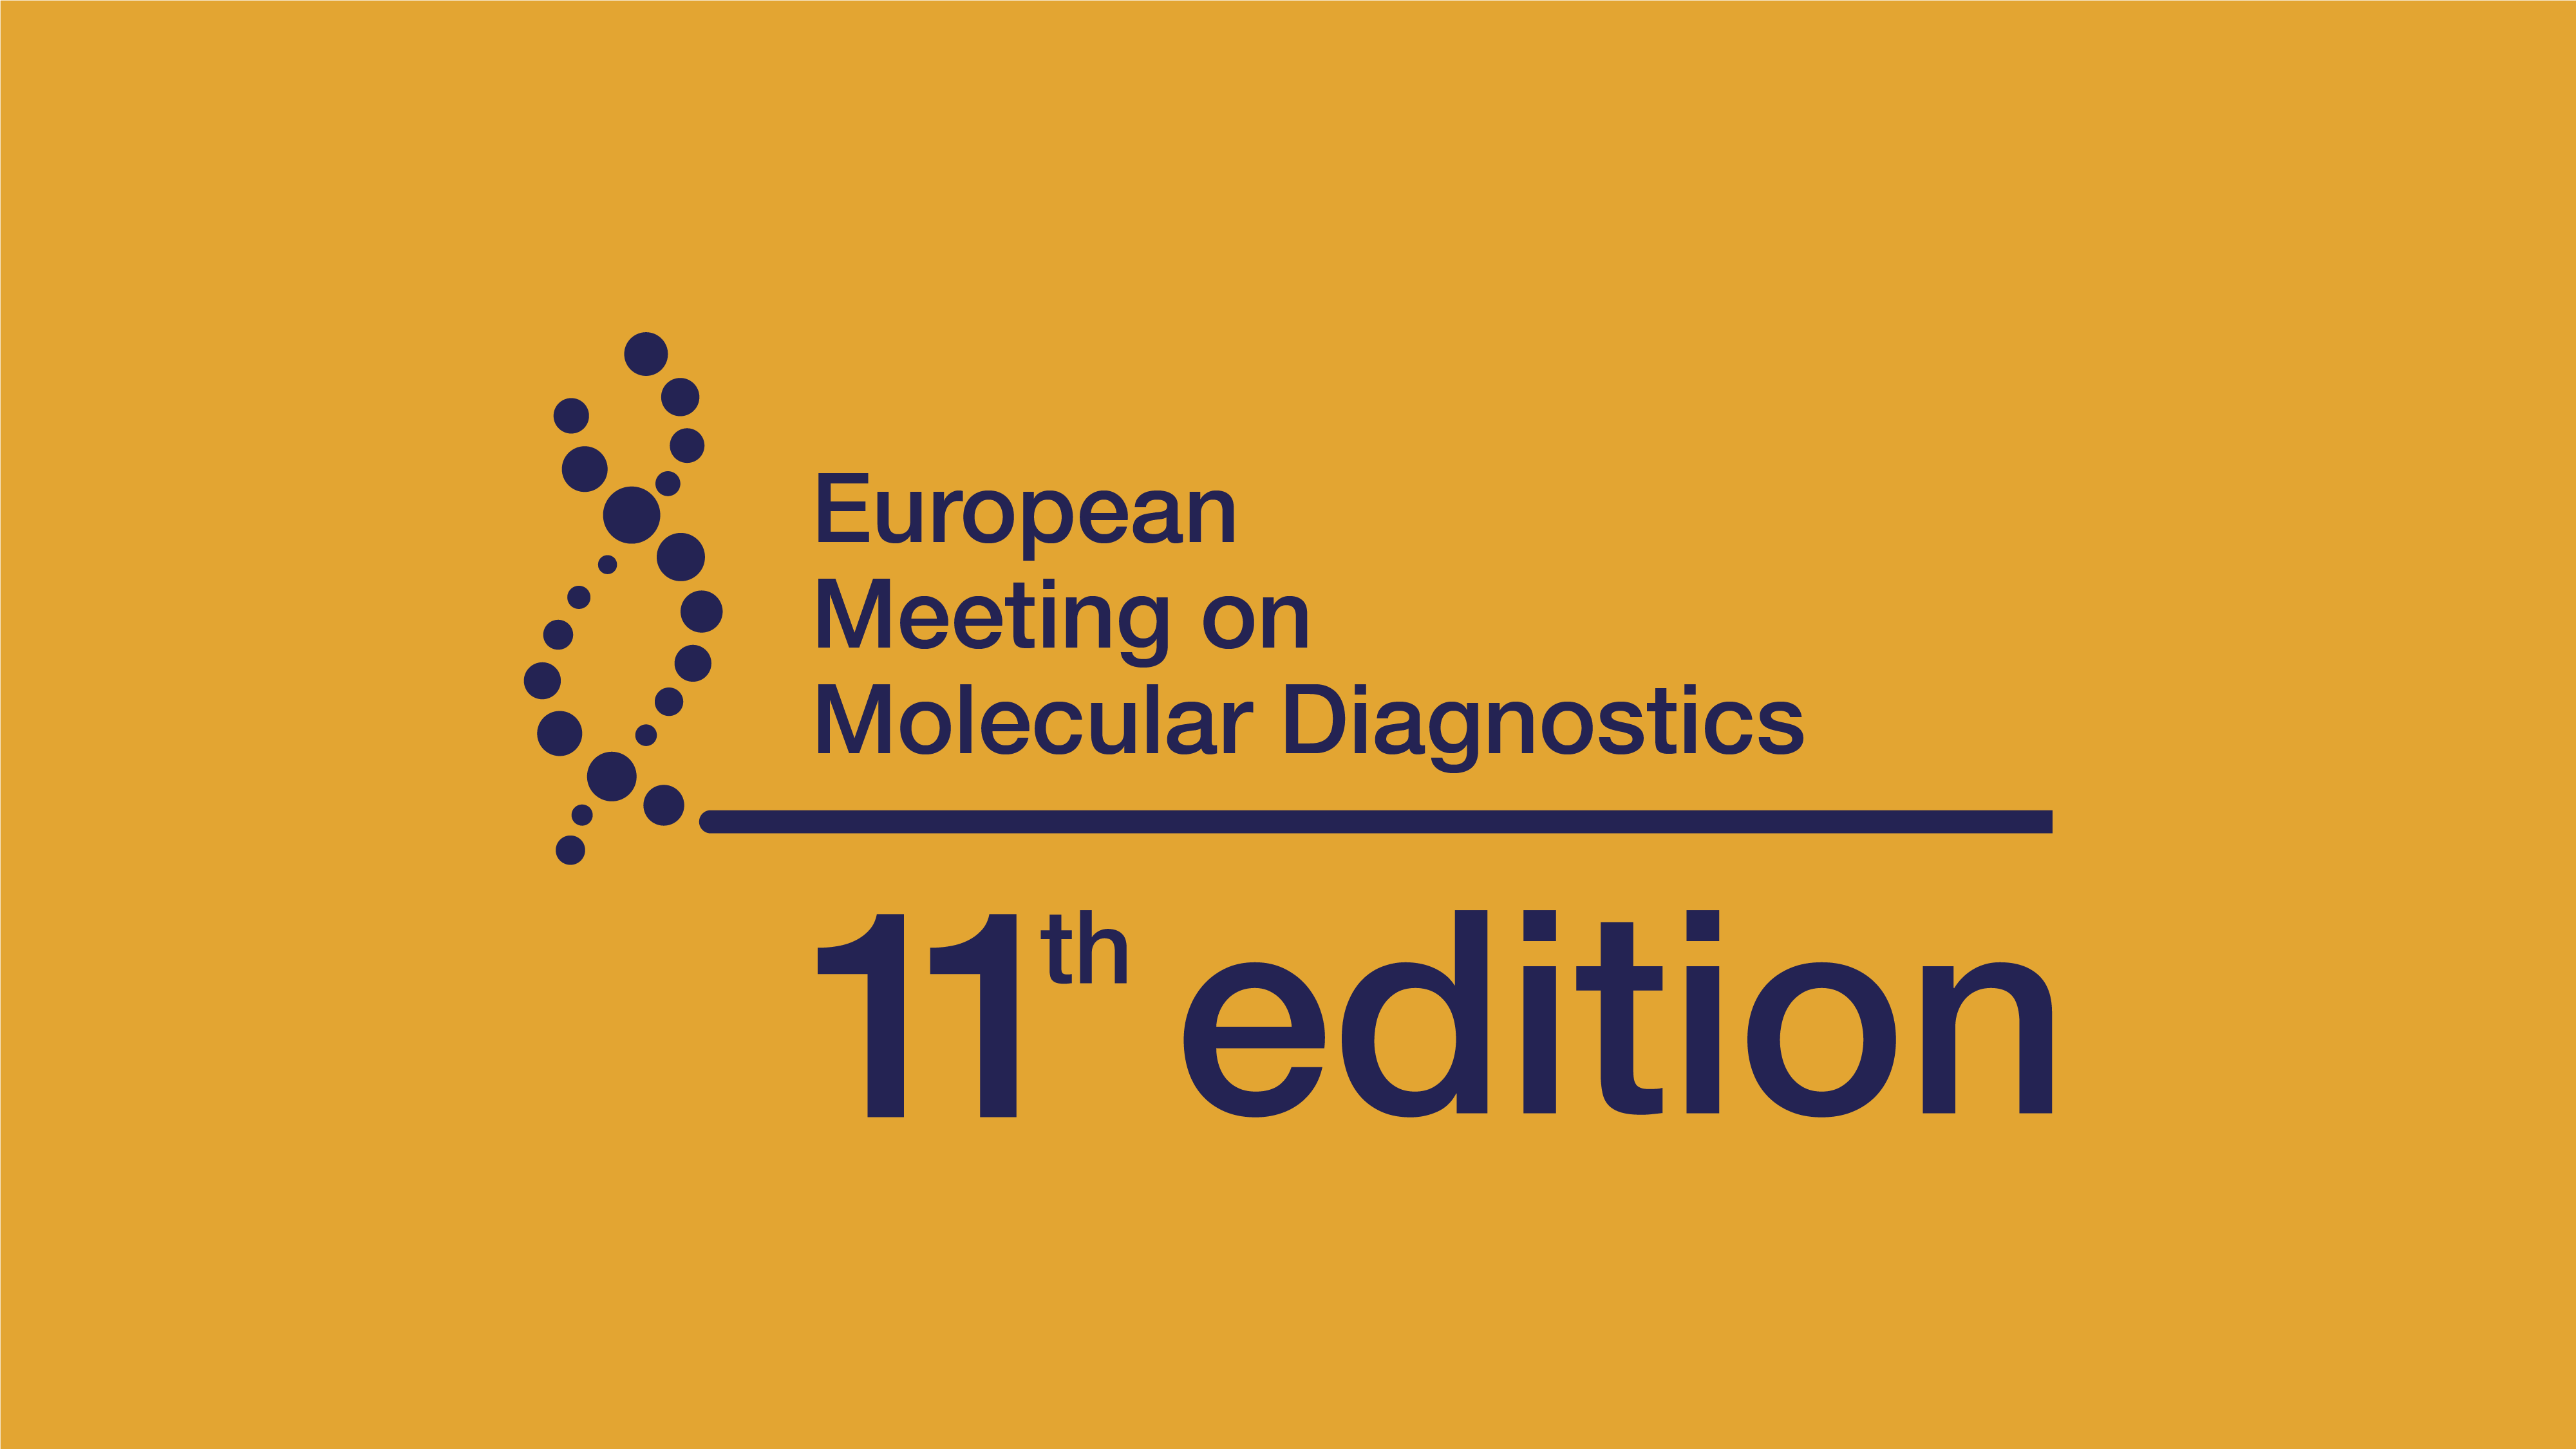 European Meeting on Molecular Diagnostics